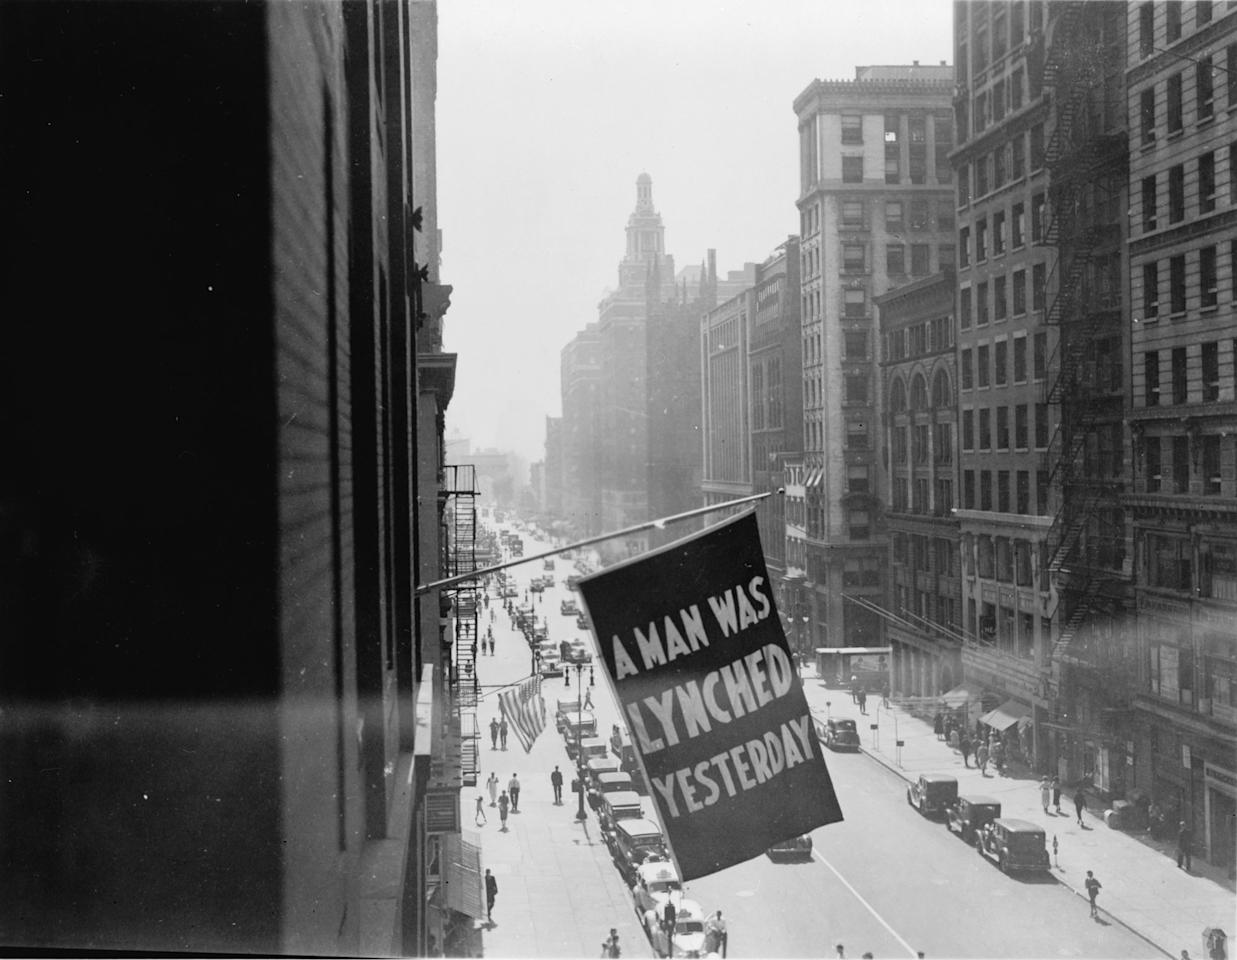 <p>A flag flies outside the offices of the NAACP on Fifth Avenue, announcing that another lynching had taken place in America. (Visual Materials from the NAACP Records, Prints and Photographs Division, Visual Materials from the NAACP Records, Library of Congress, Washington, D.C.) </p>